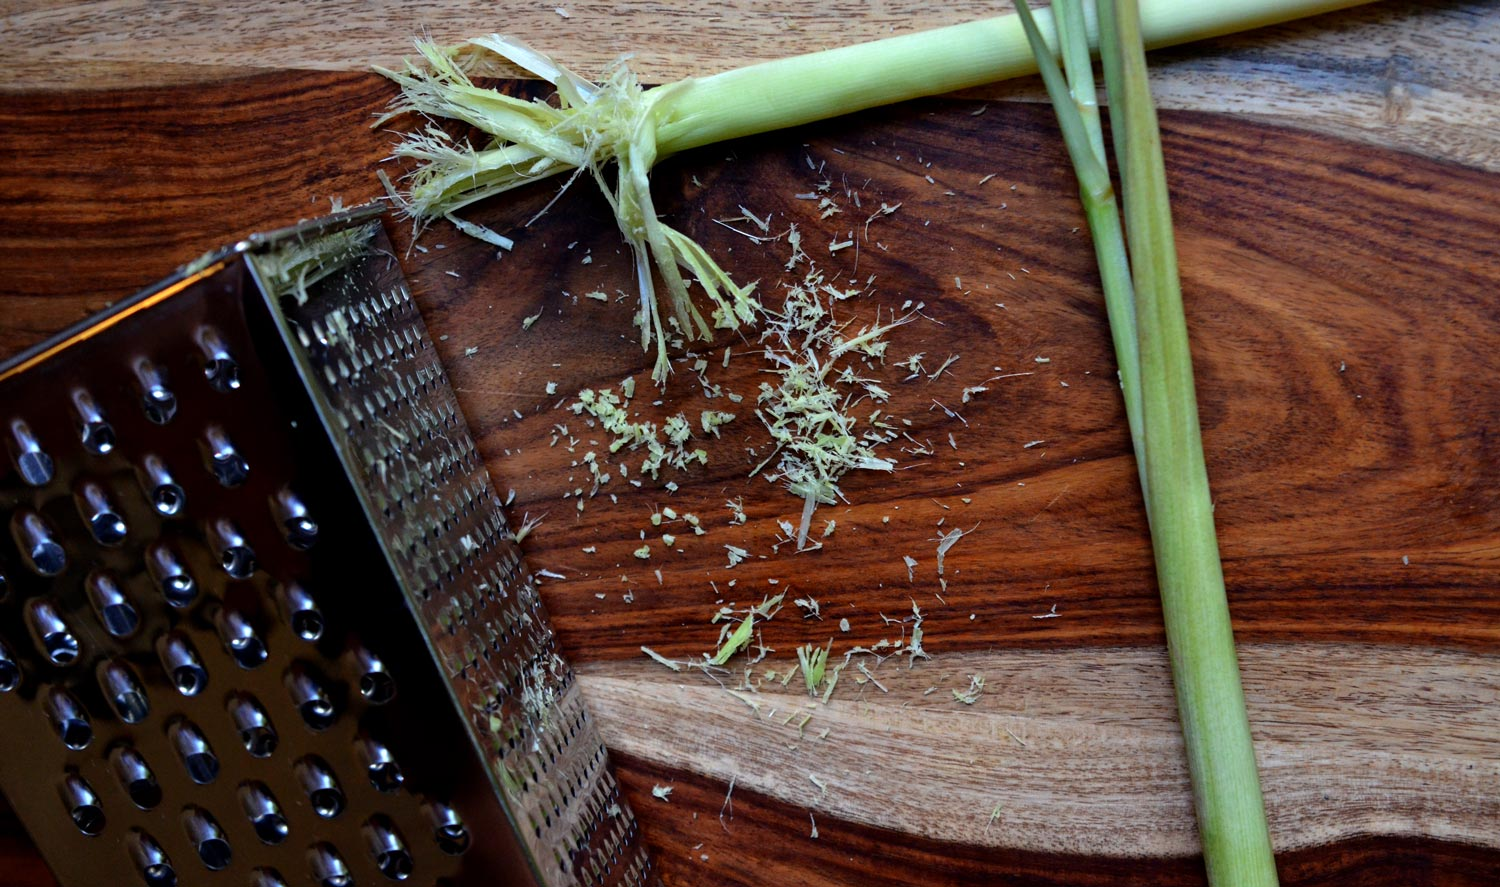 Grated Lemongrass